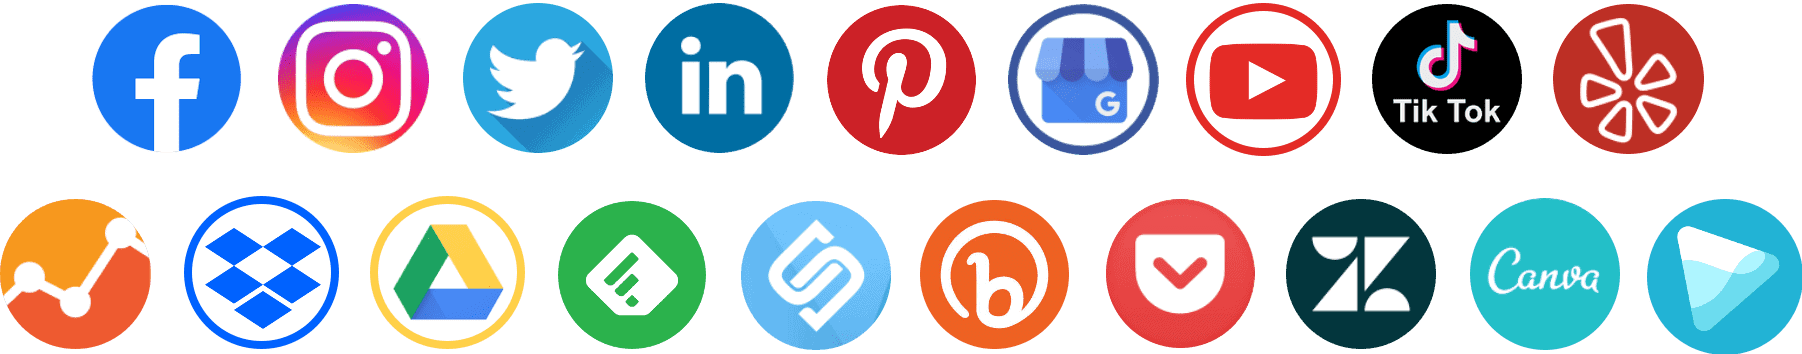 social media round icons